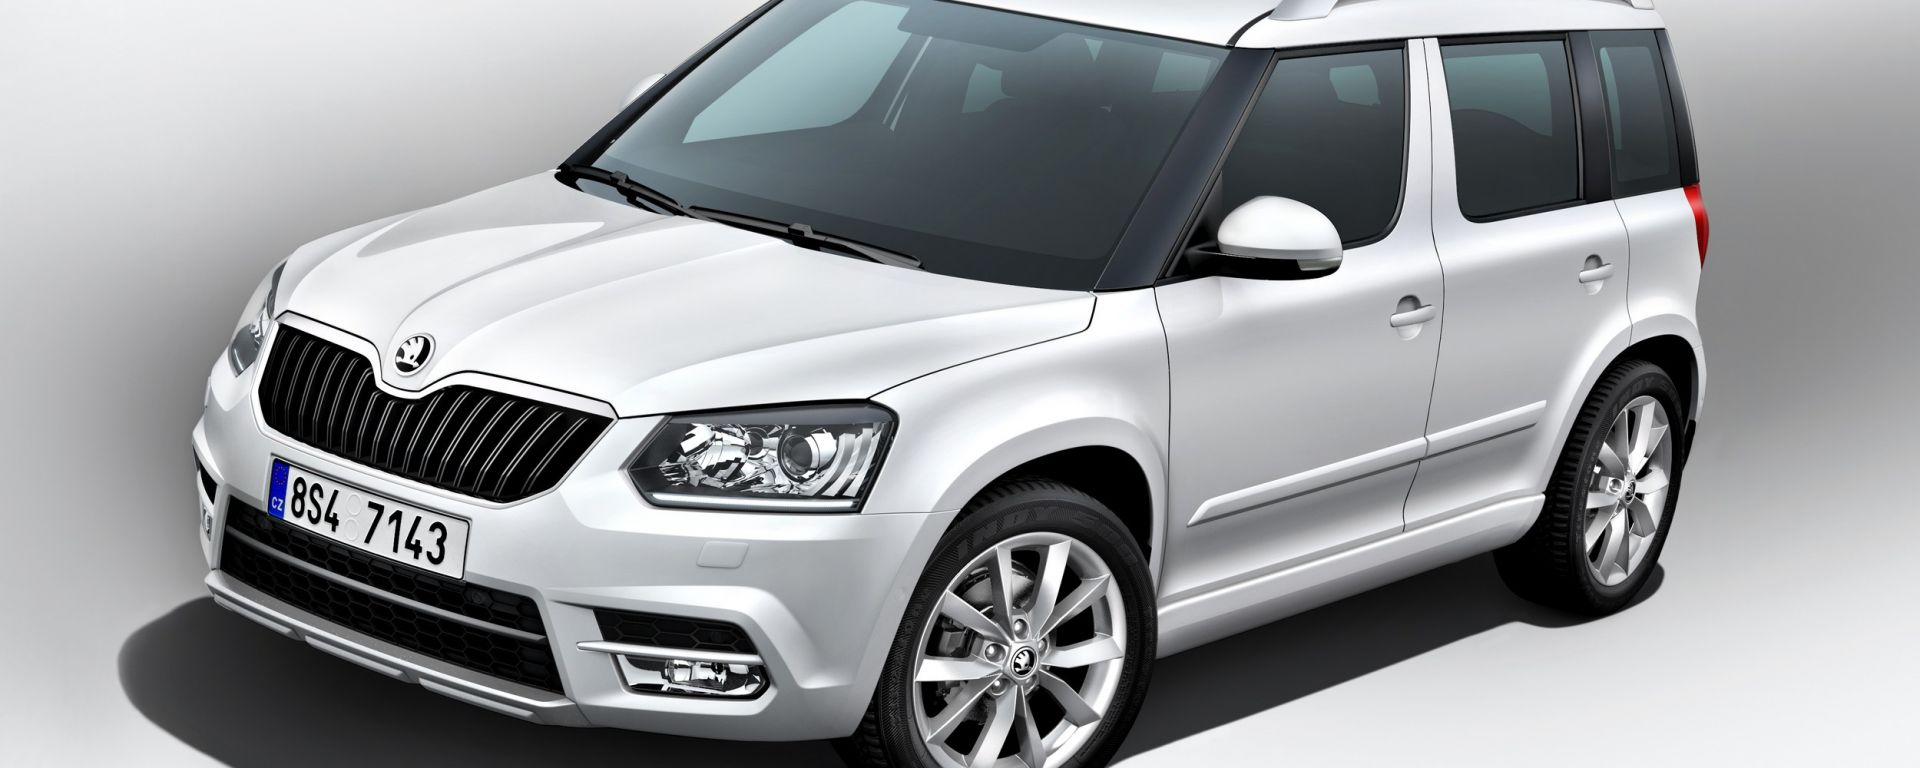 anteprima skoda yeti easy e fabia drive motorbox. Black Bedroom Furniture Sets. Home Design Ideas